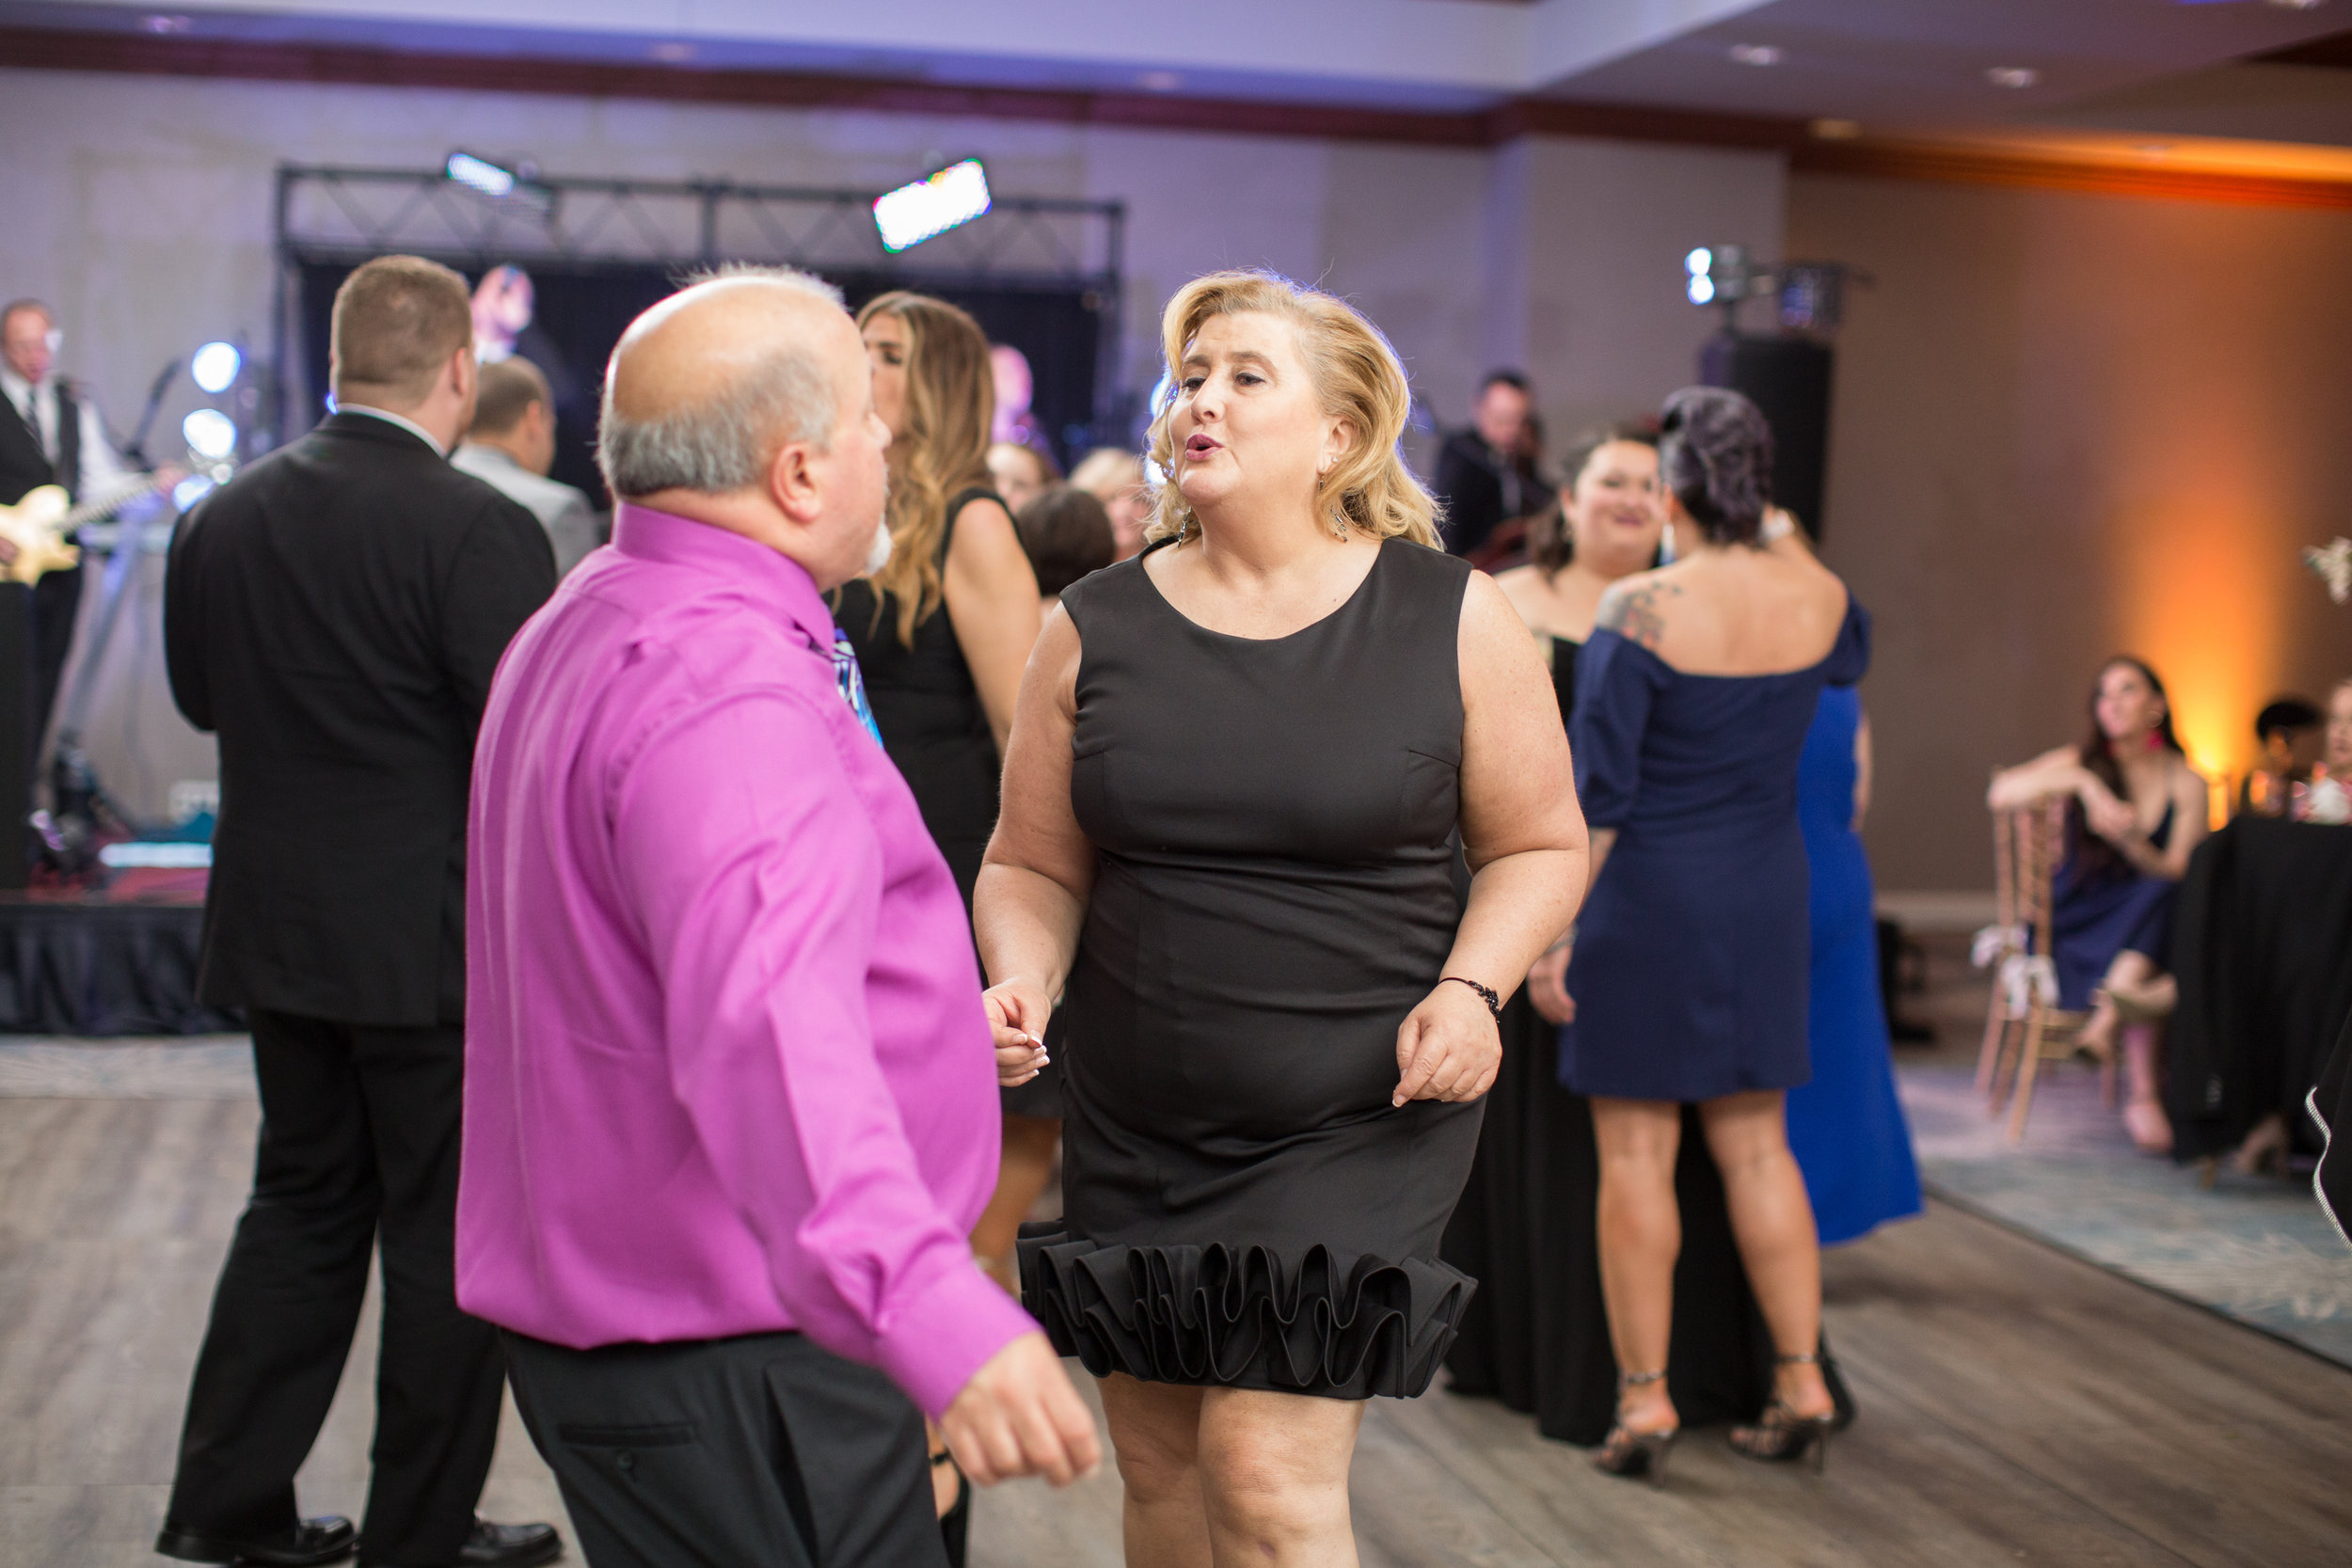 Hilton Scranton PA Wedding Photos_JDP-138.jpg